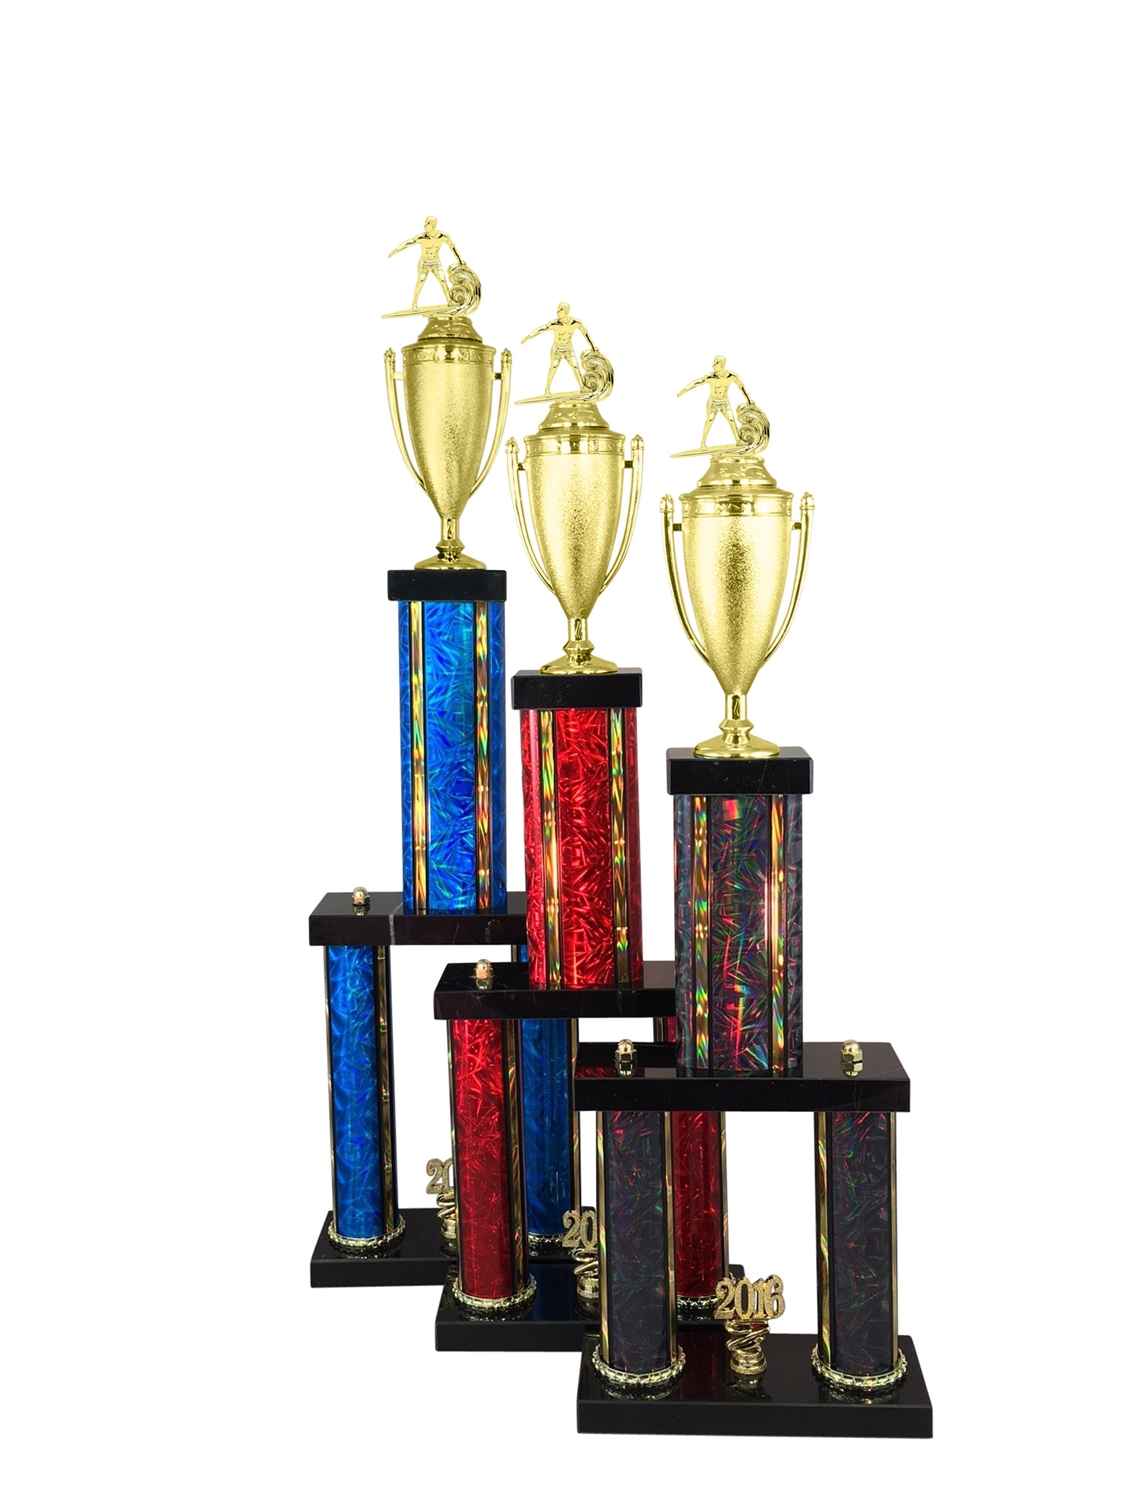 Surfing Trophy Available in 11 Color & 6 Size Options